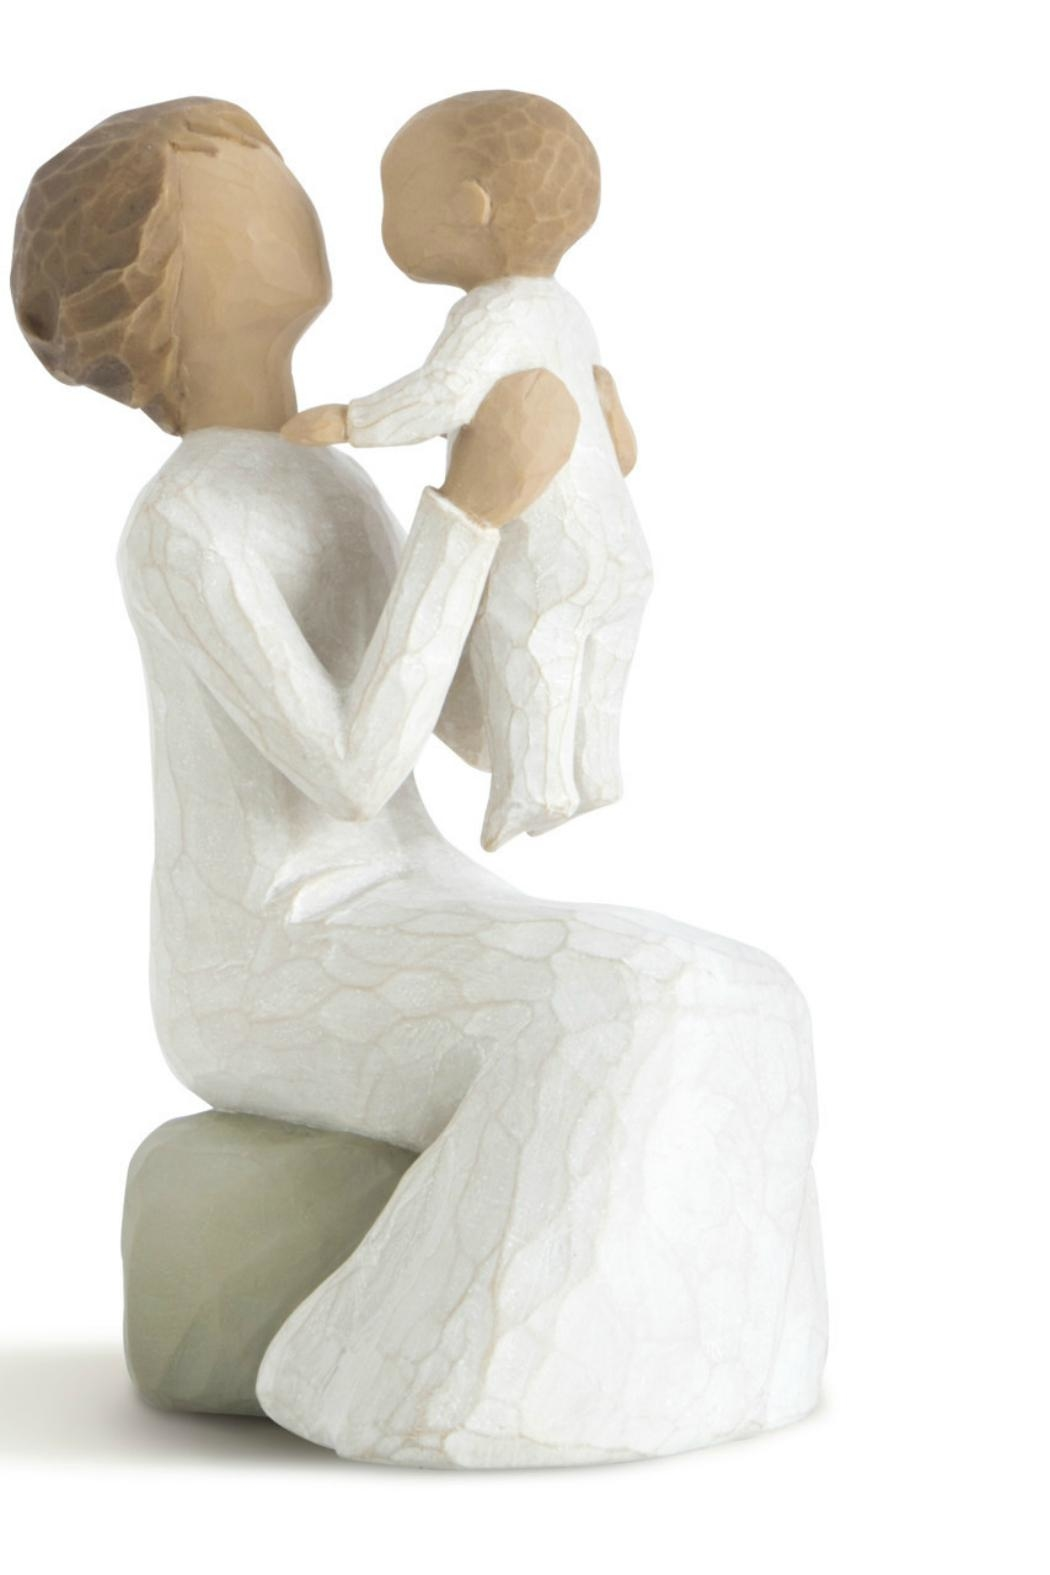 Willow Tree(r) by Susan Lordi, from DEMDACO Grandmother Figurine - Main Image